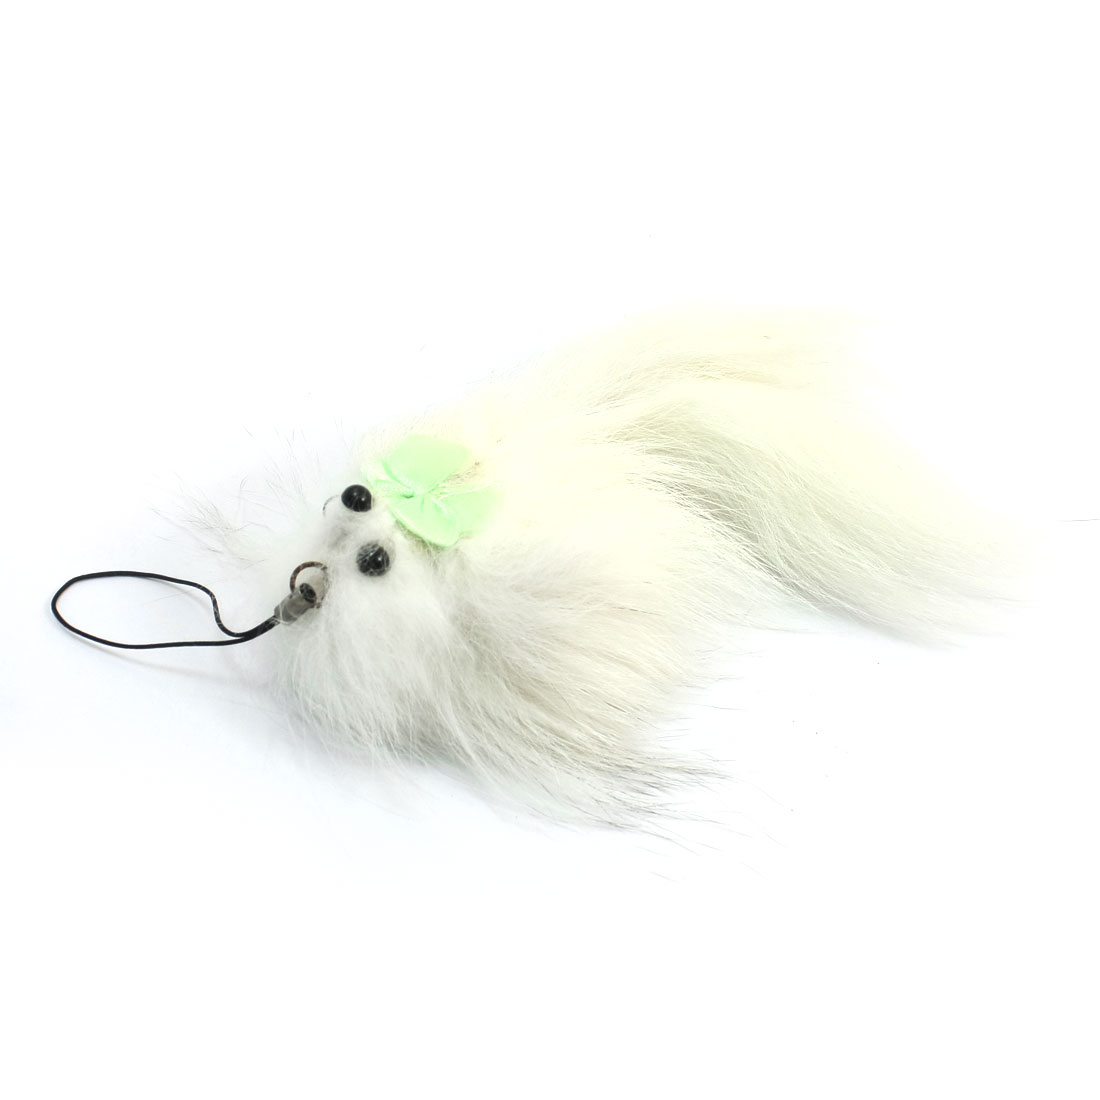 String Mini Light Green Bowtie Decor White Soft Faux Fur Fox Strap Charm for Handbag Purse